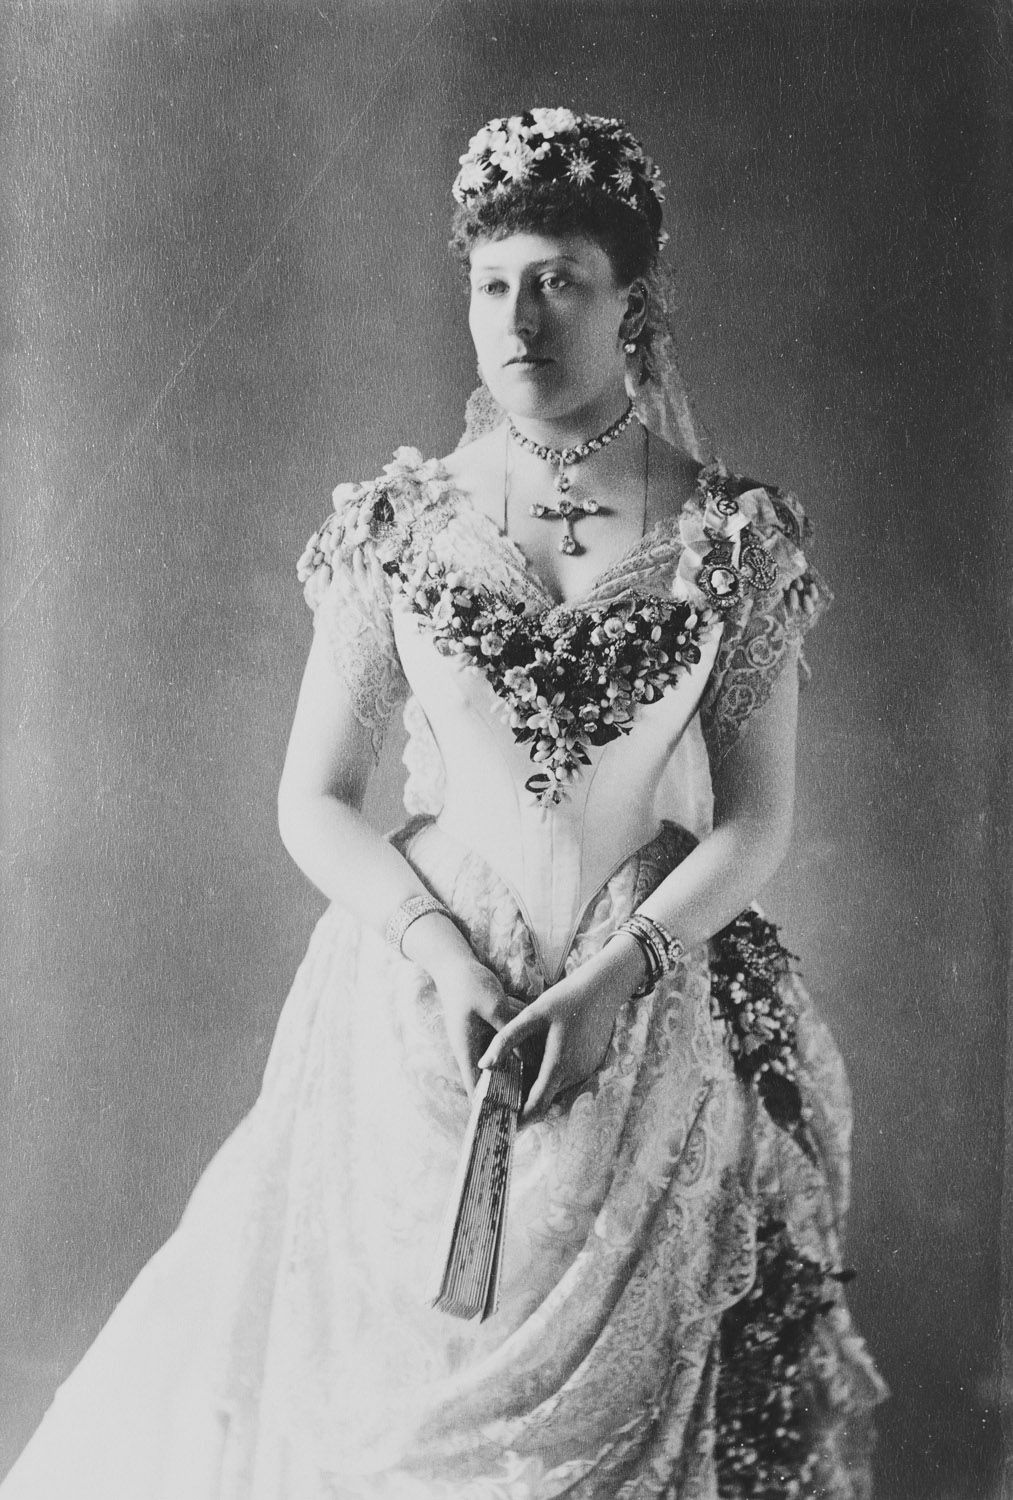 Princess Beatrice 1857 1944 In Her Wedding Dress July 23 1885